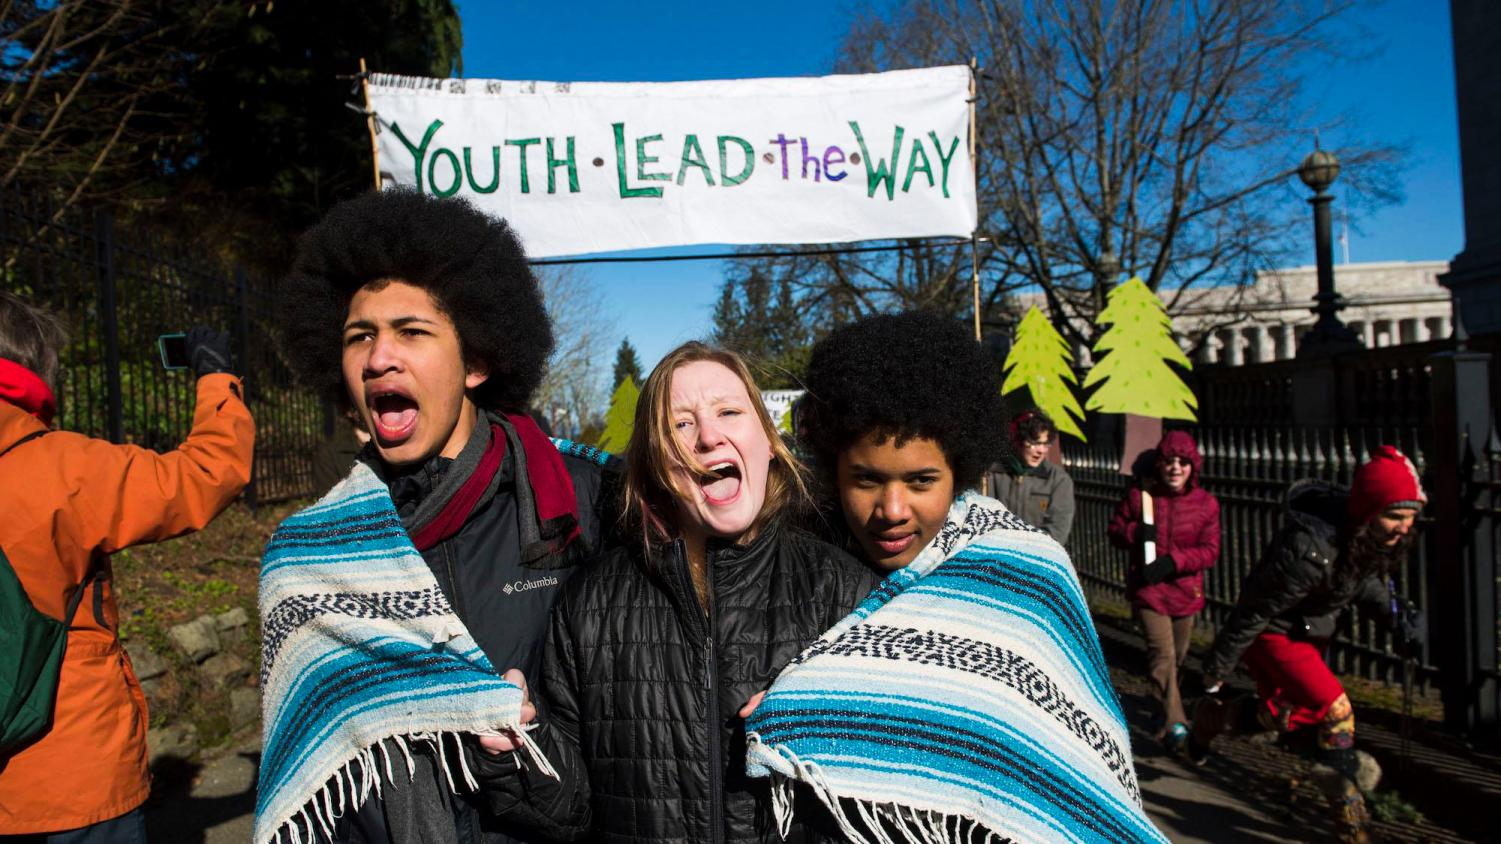 OurClimate, students and other organizations will hold the second annual youth rally and lobby event today in Olympia to get students involved and more educated about climate change.